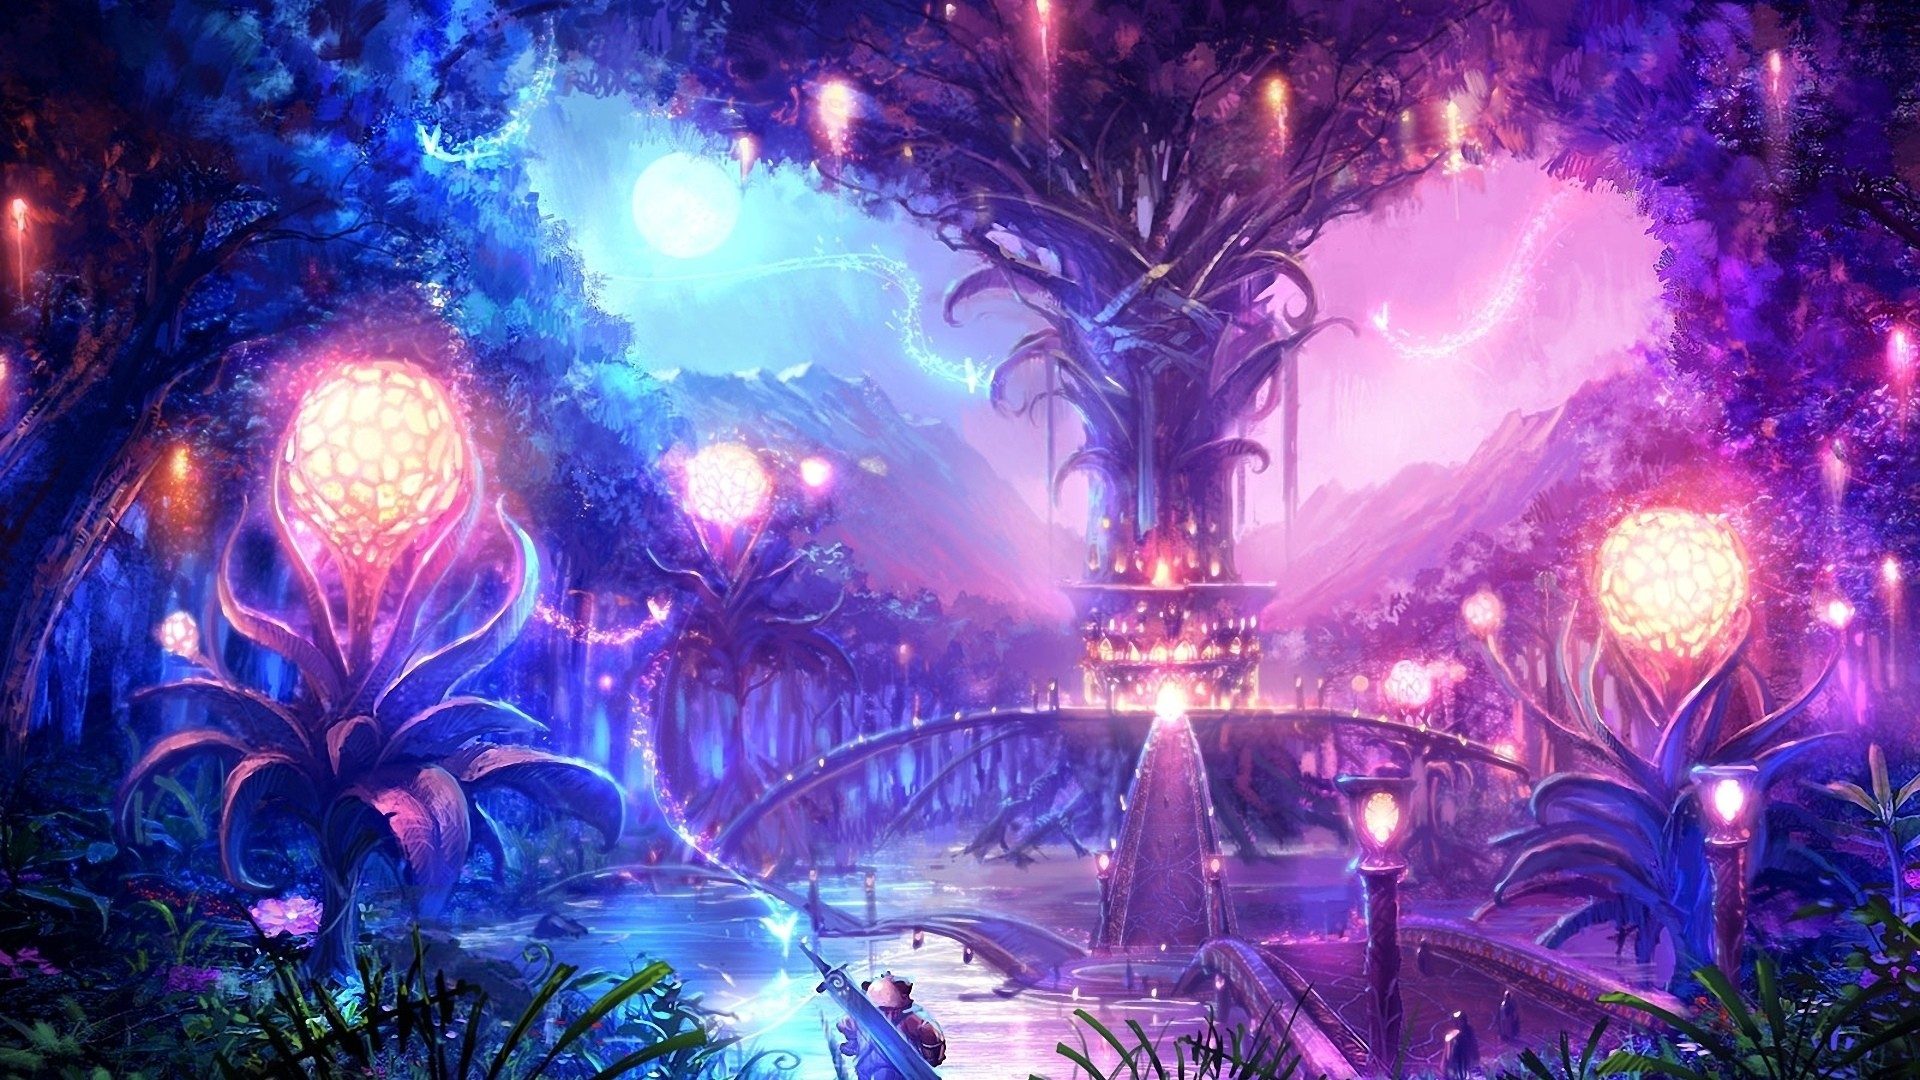 Res: 1920x1080, Anime Fantasy Landscape Wallpapers Hd